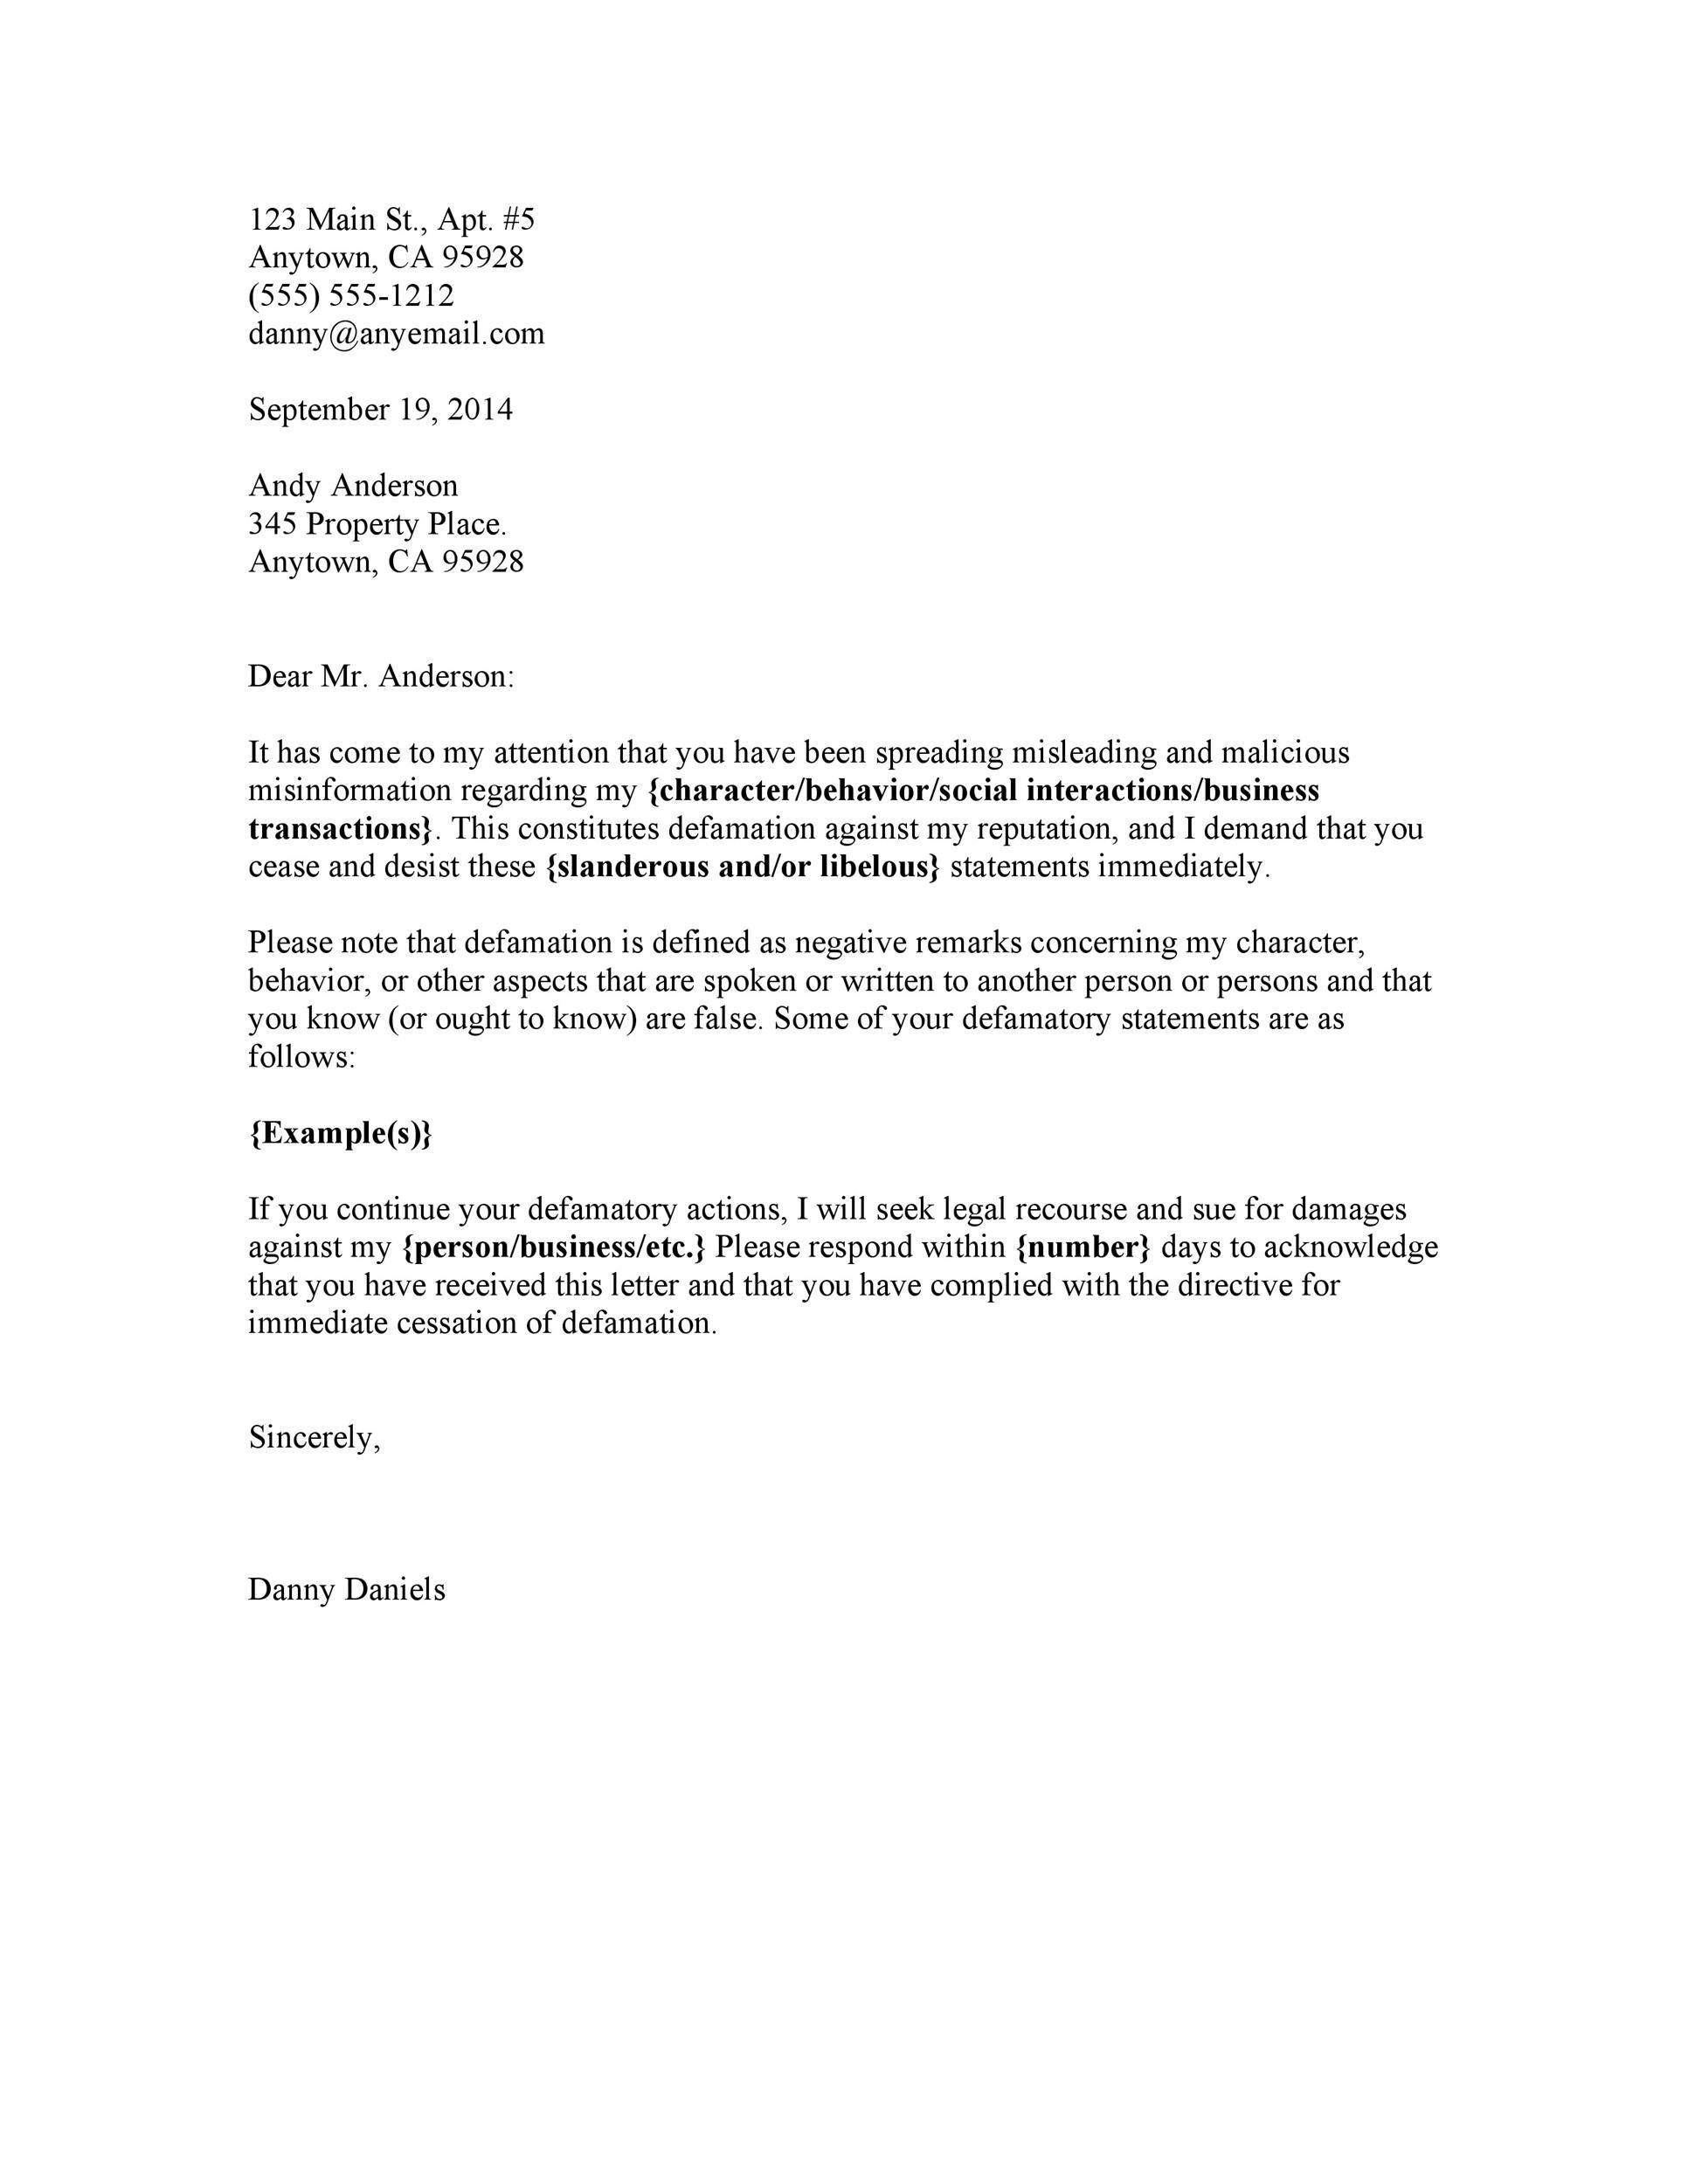 Cease And Desist Letter Templates Free  Template Lab